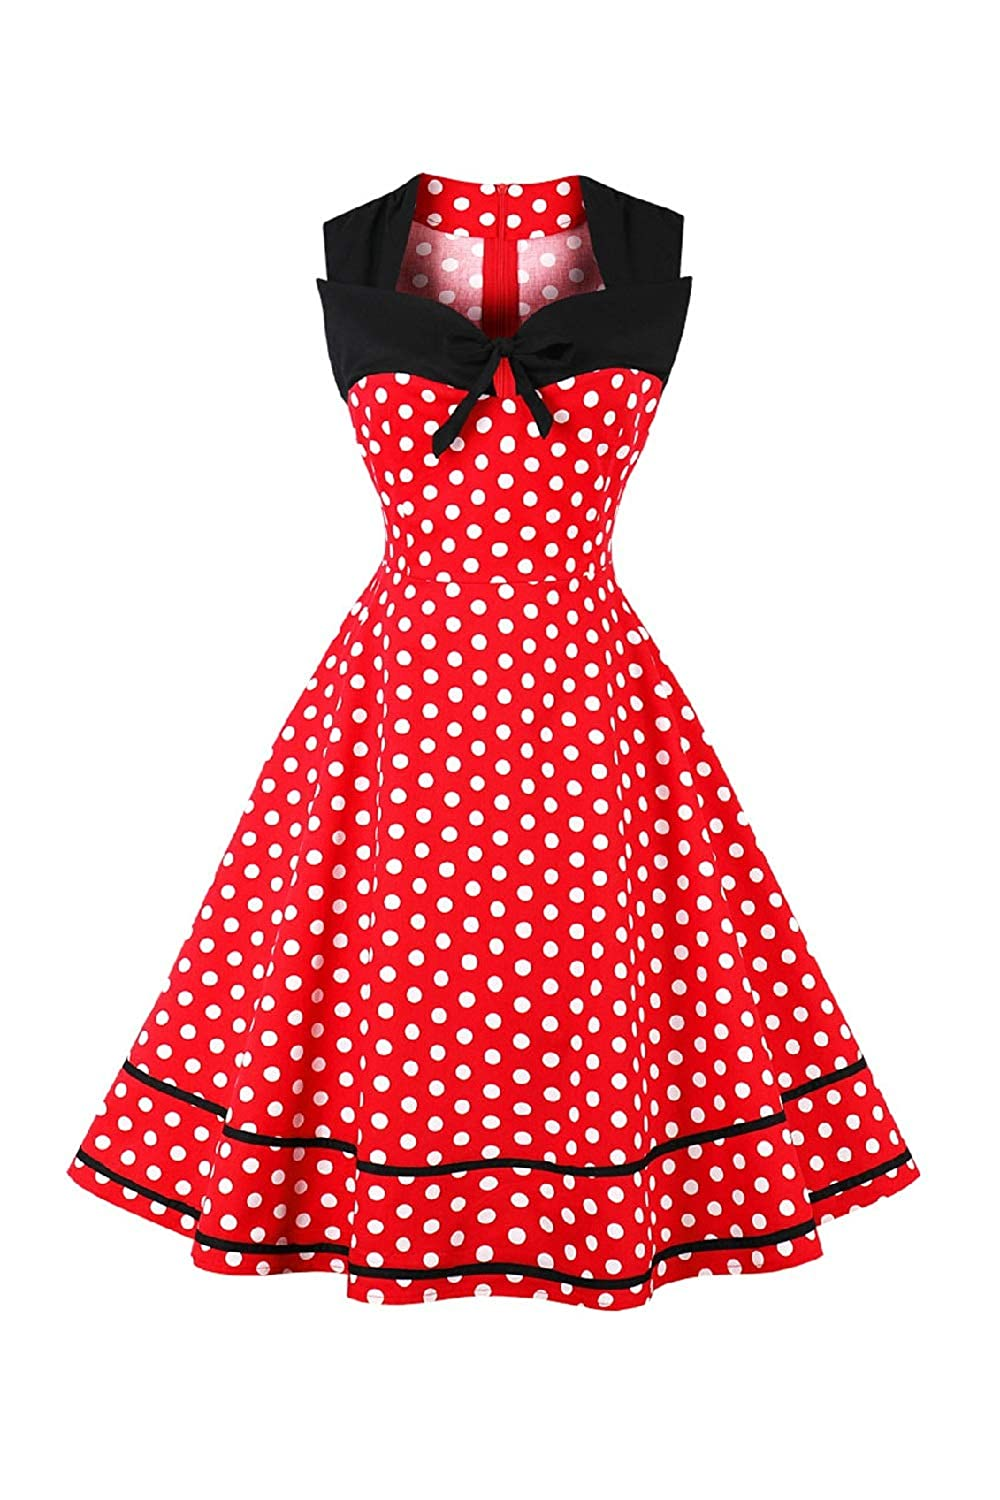 Yacun Womens Vintage Floral 1920s Rockabilly Swing Cocktail Party Dress